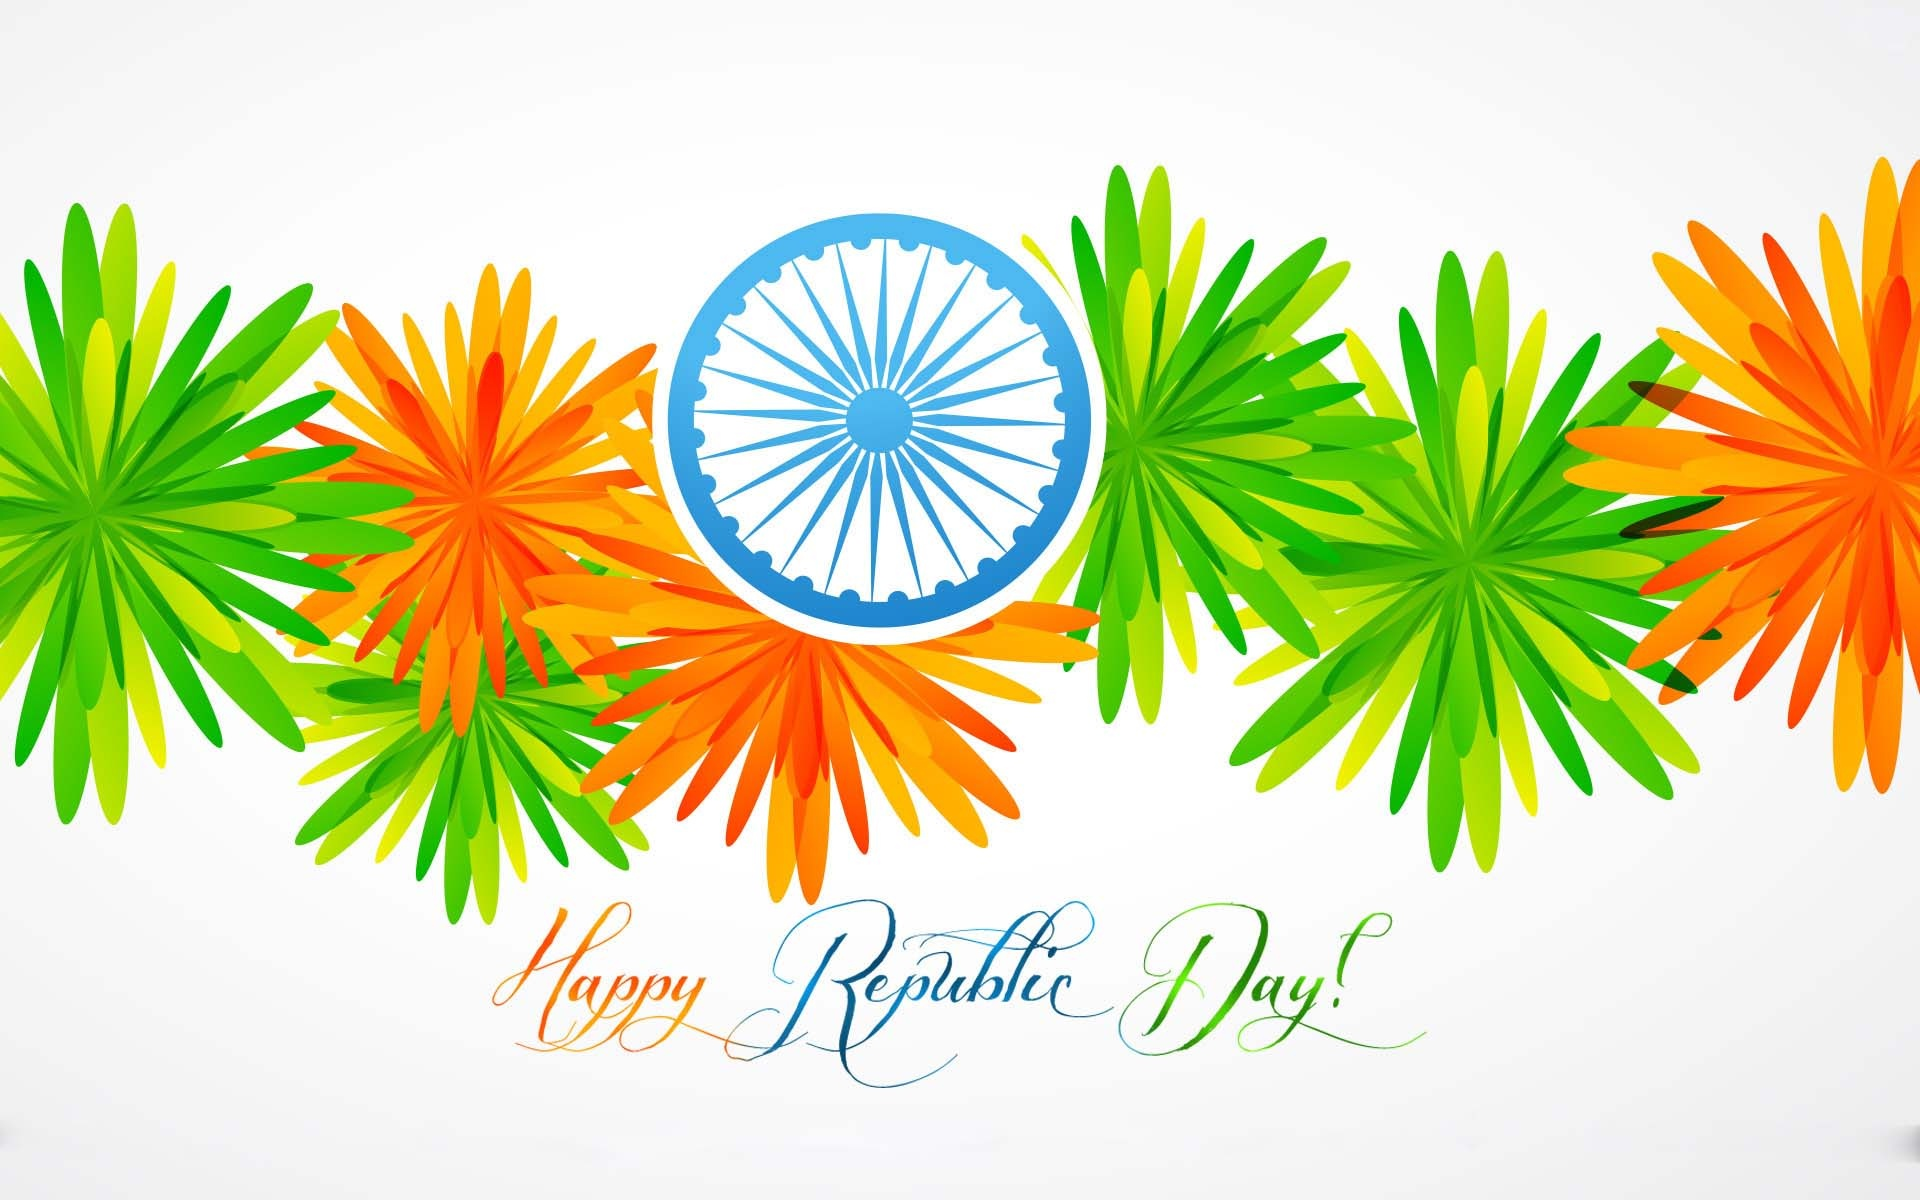 4 easy line on republic day 26th january is the republic day of india on this day india became a free republic and the biggest democracy in the world on this day the people of india took a vow to have a government of the people by the people and for the people.